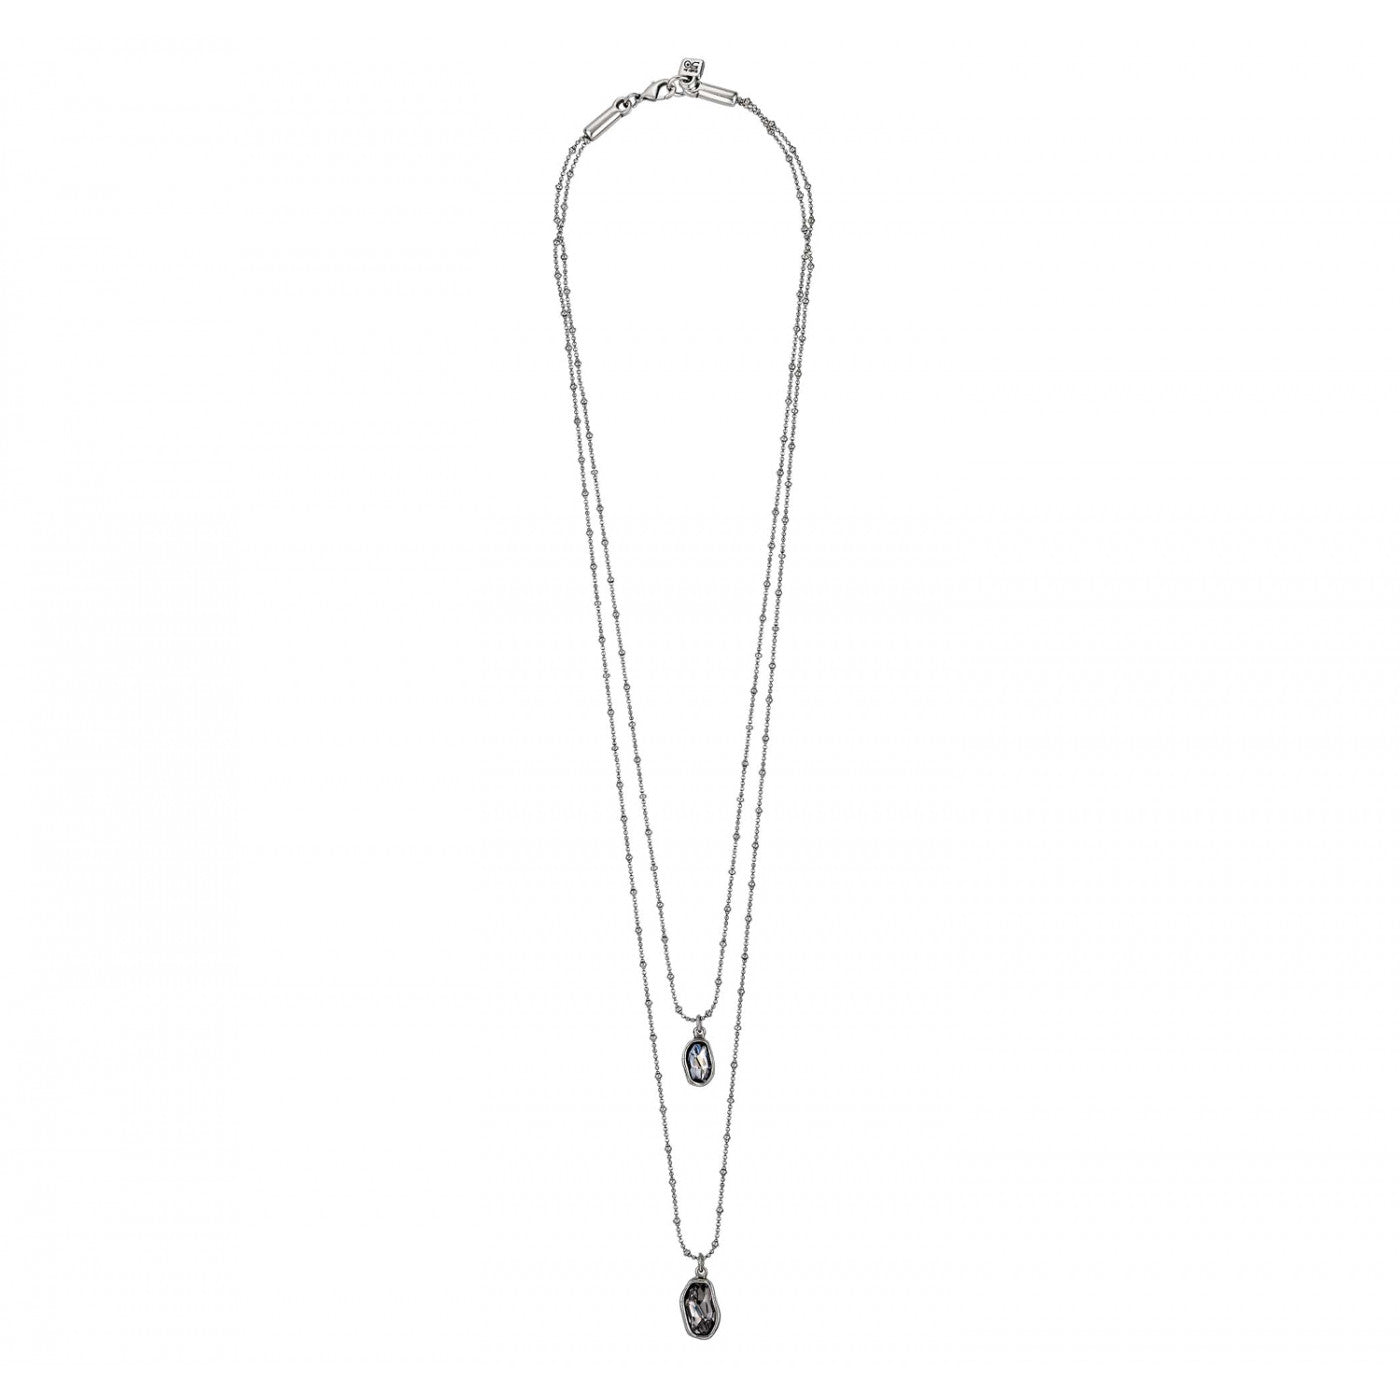 On Tip Toes Necklace - Blue/Grey